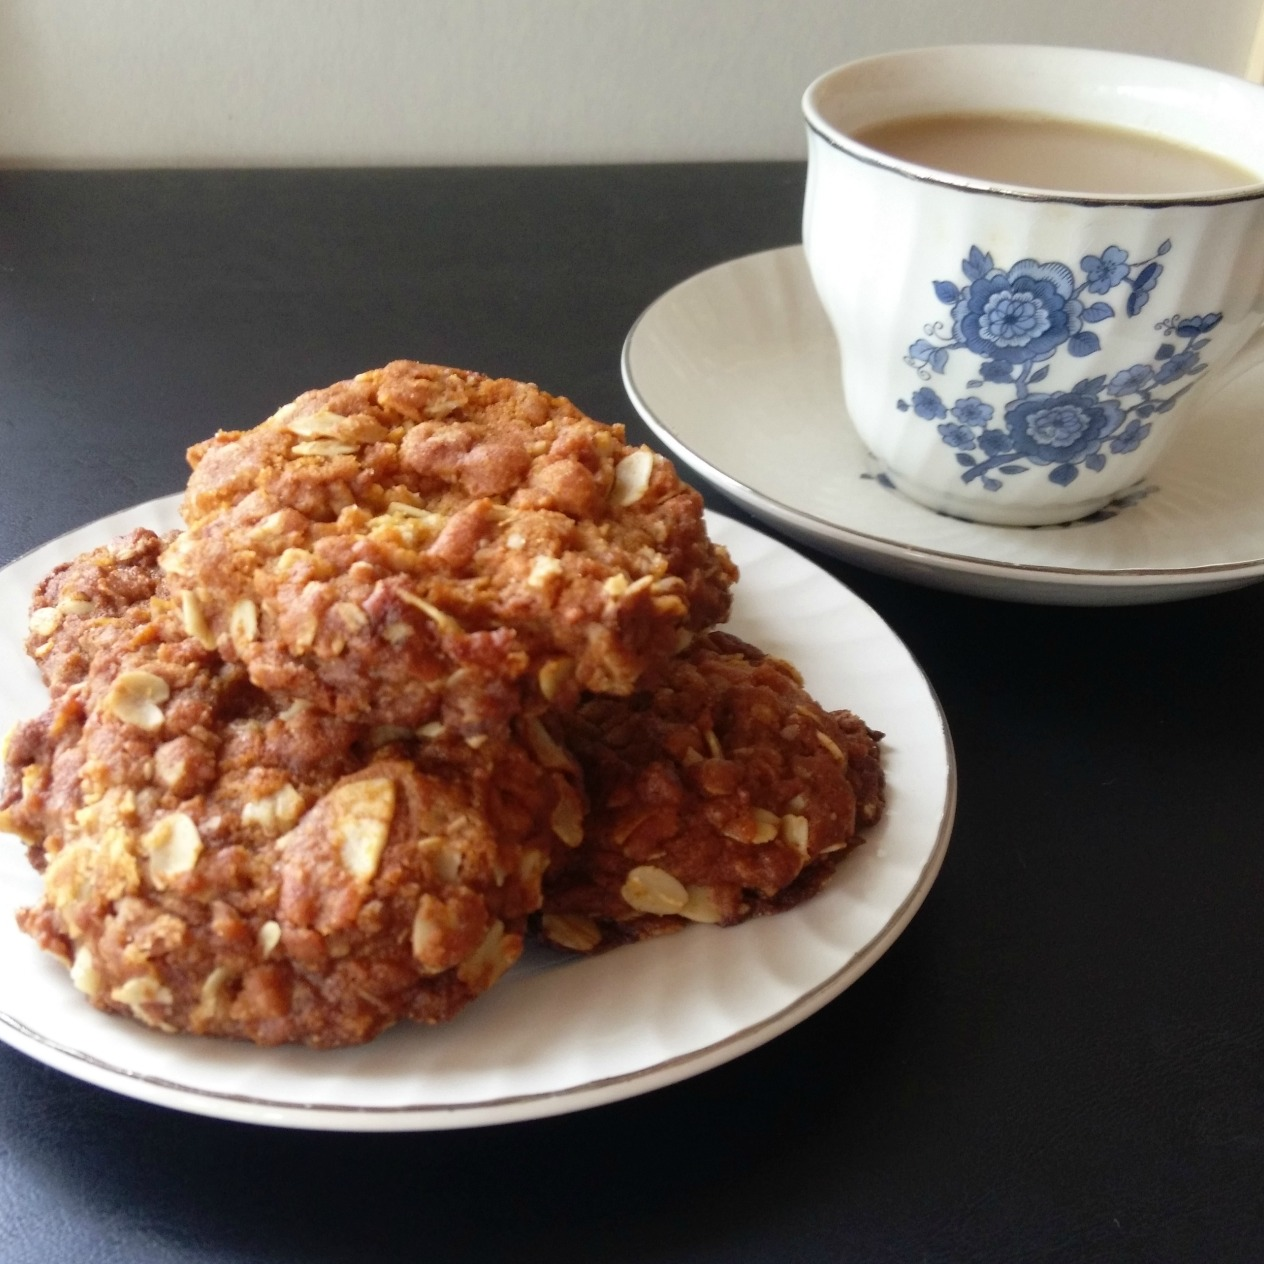 ANZAC biscuits and tea